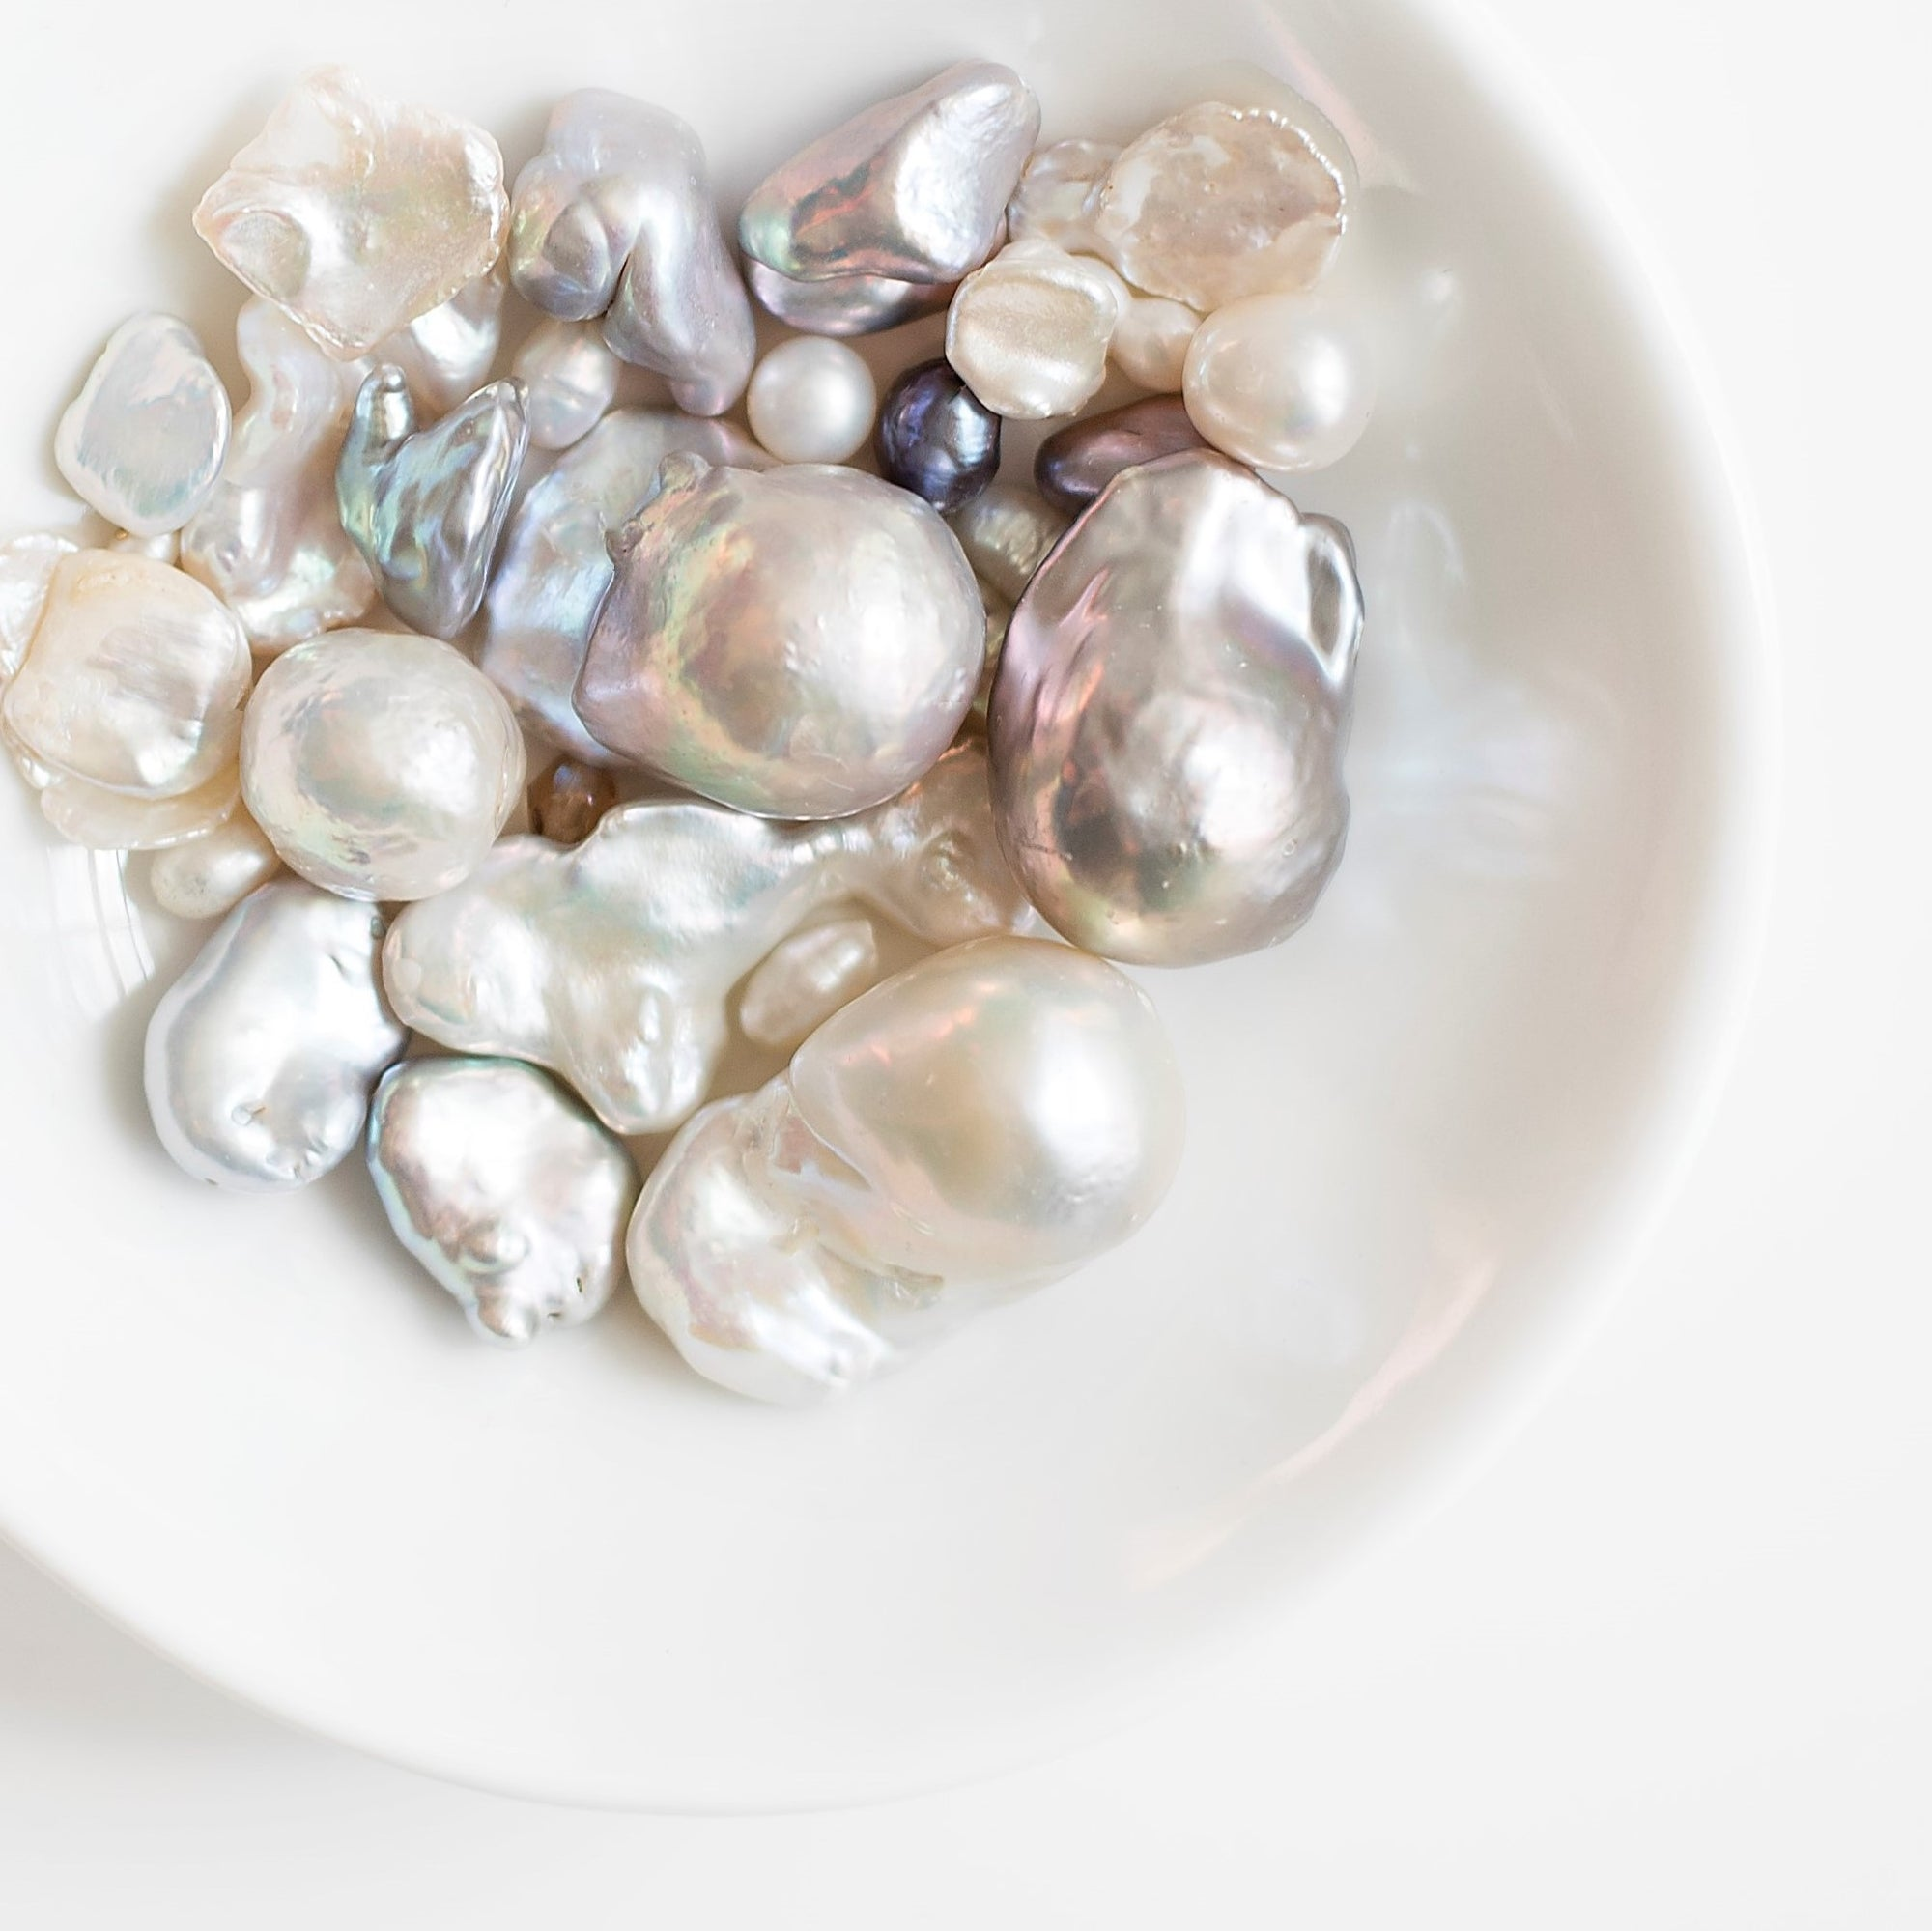 Pearl Treasured for centuries, pearls have long represented values of high significance across many cultures- wisdom, purity, and the generosity of nature. In modern times, pearls remain known as a tribute to classic and enduring beauty. We're constantly